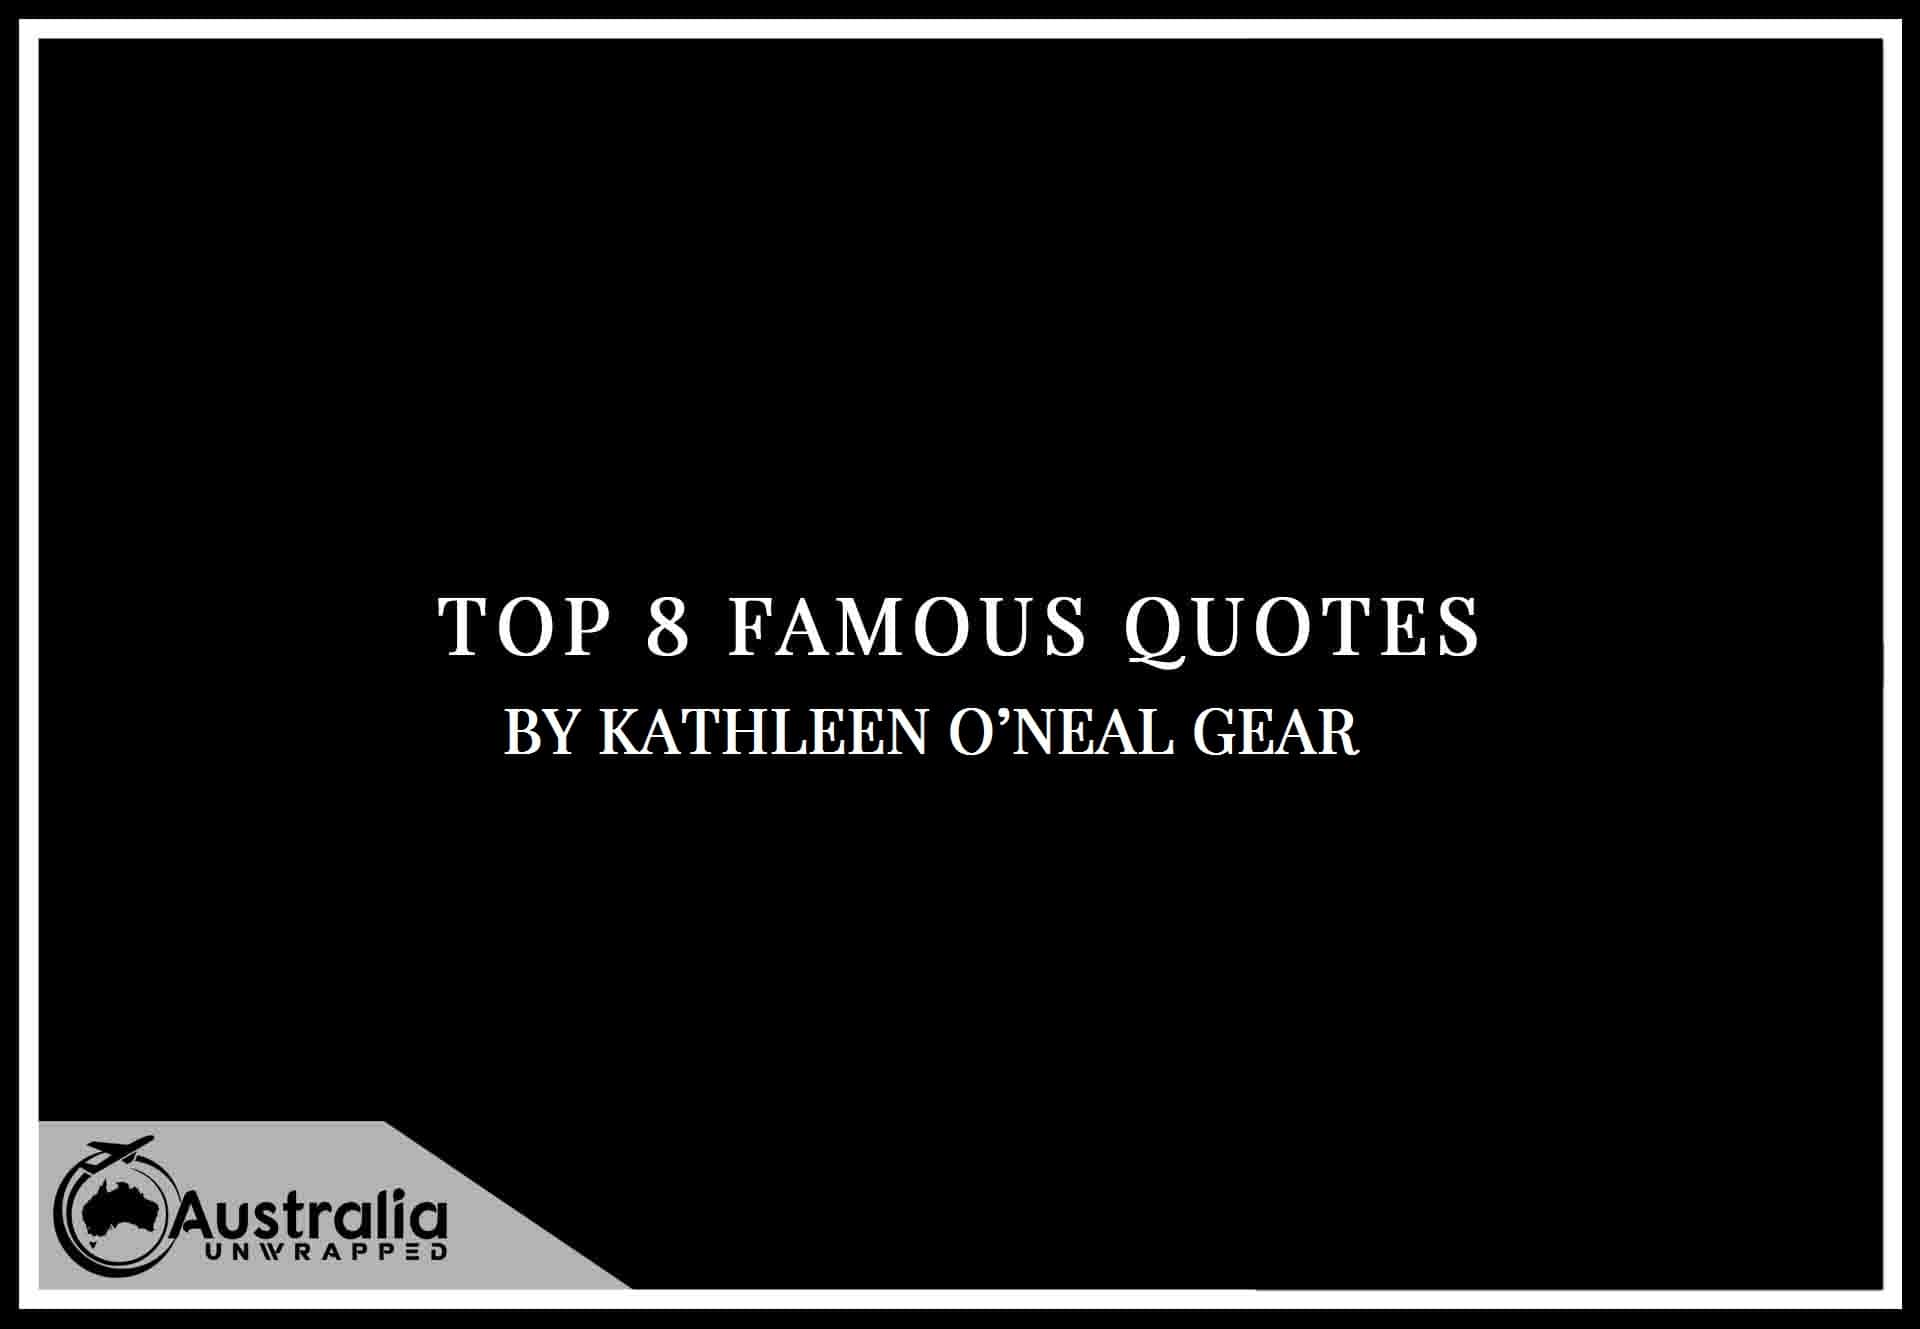 Kathleen O'Neal Gear's Top 8 Popular and Famous Quotes